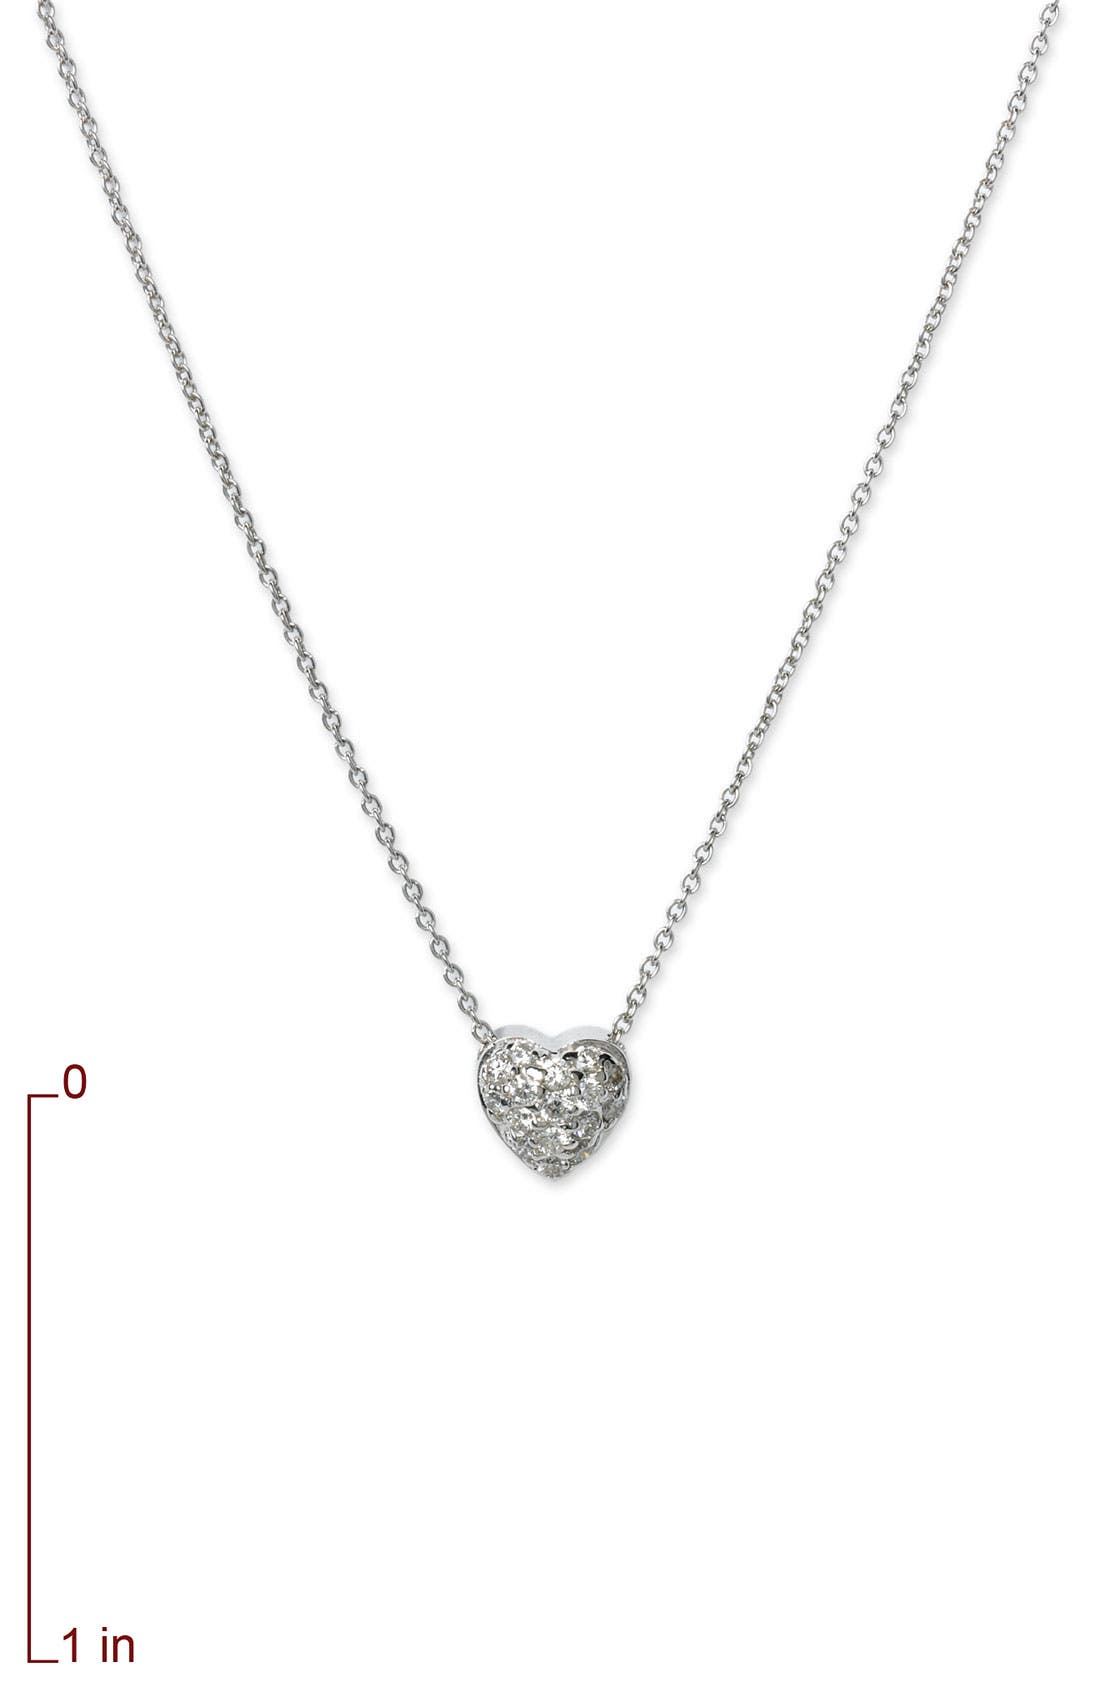 'Tiny Treasures' Diamond Puffed Heart Pendant Necklace,                             Alternate thumbnail 4, color,                             041